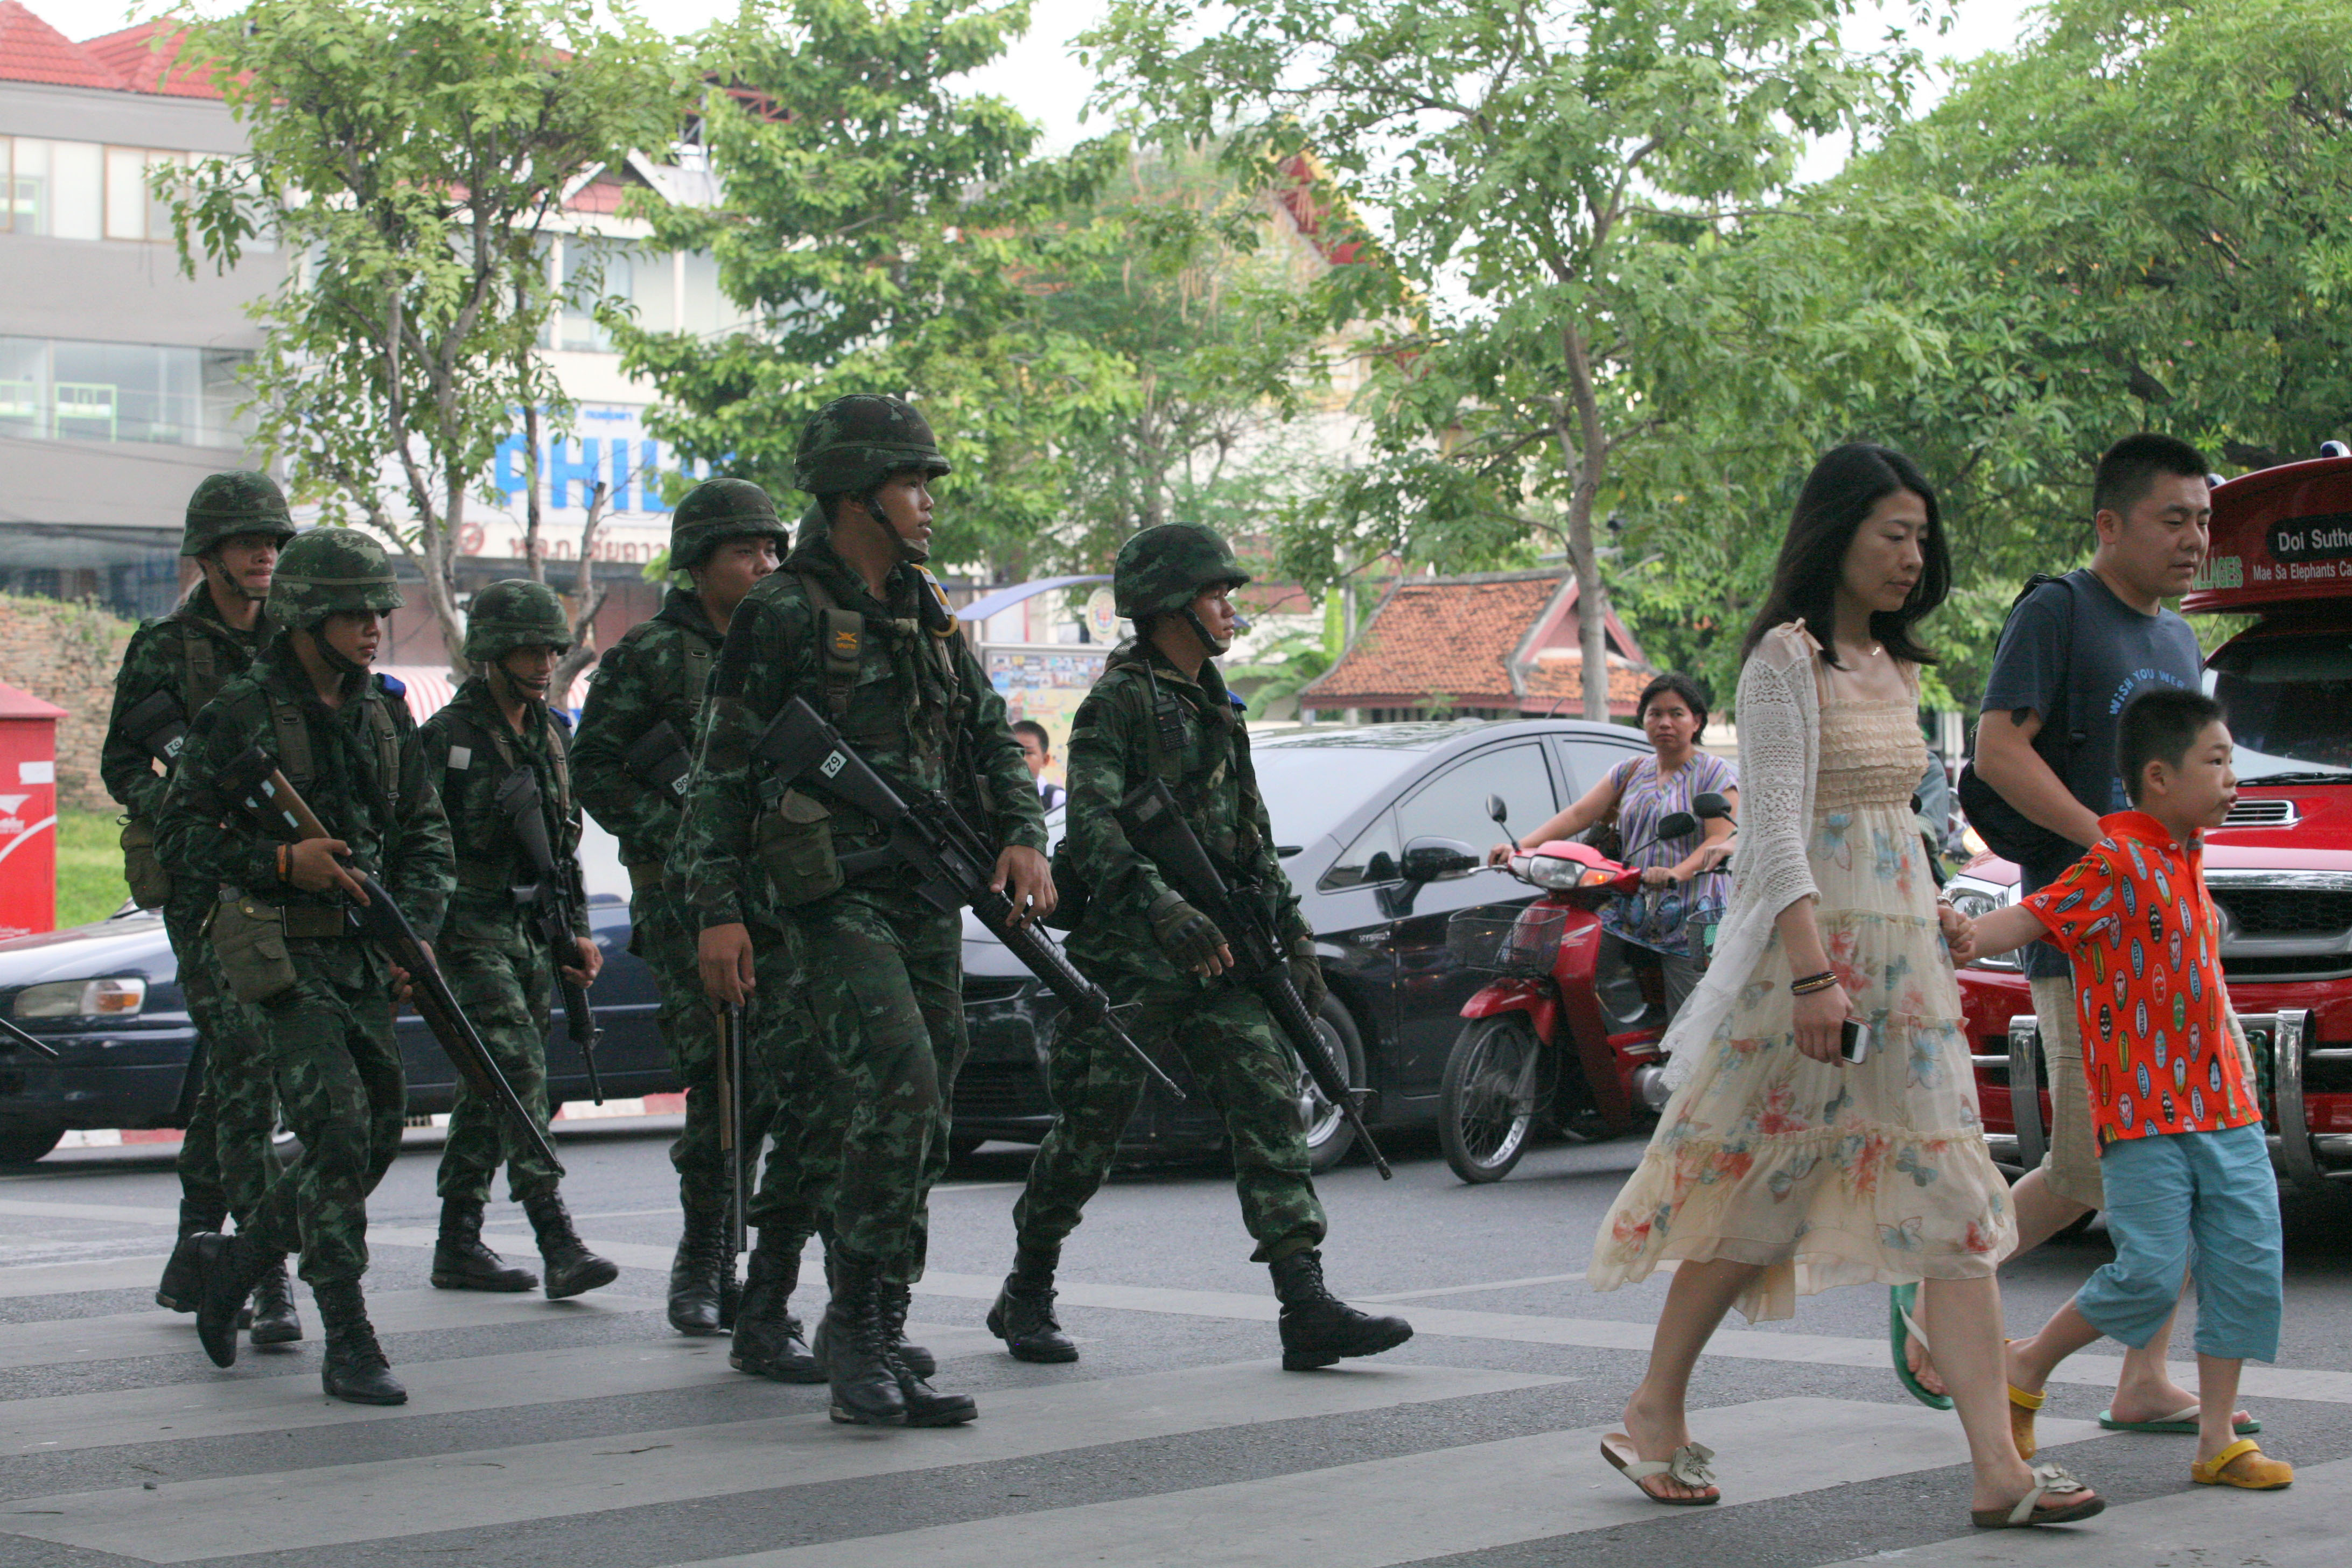 Thailand Under the Junta